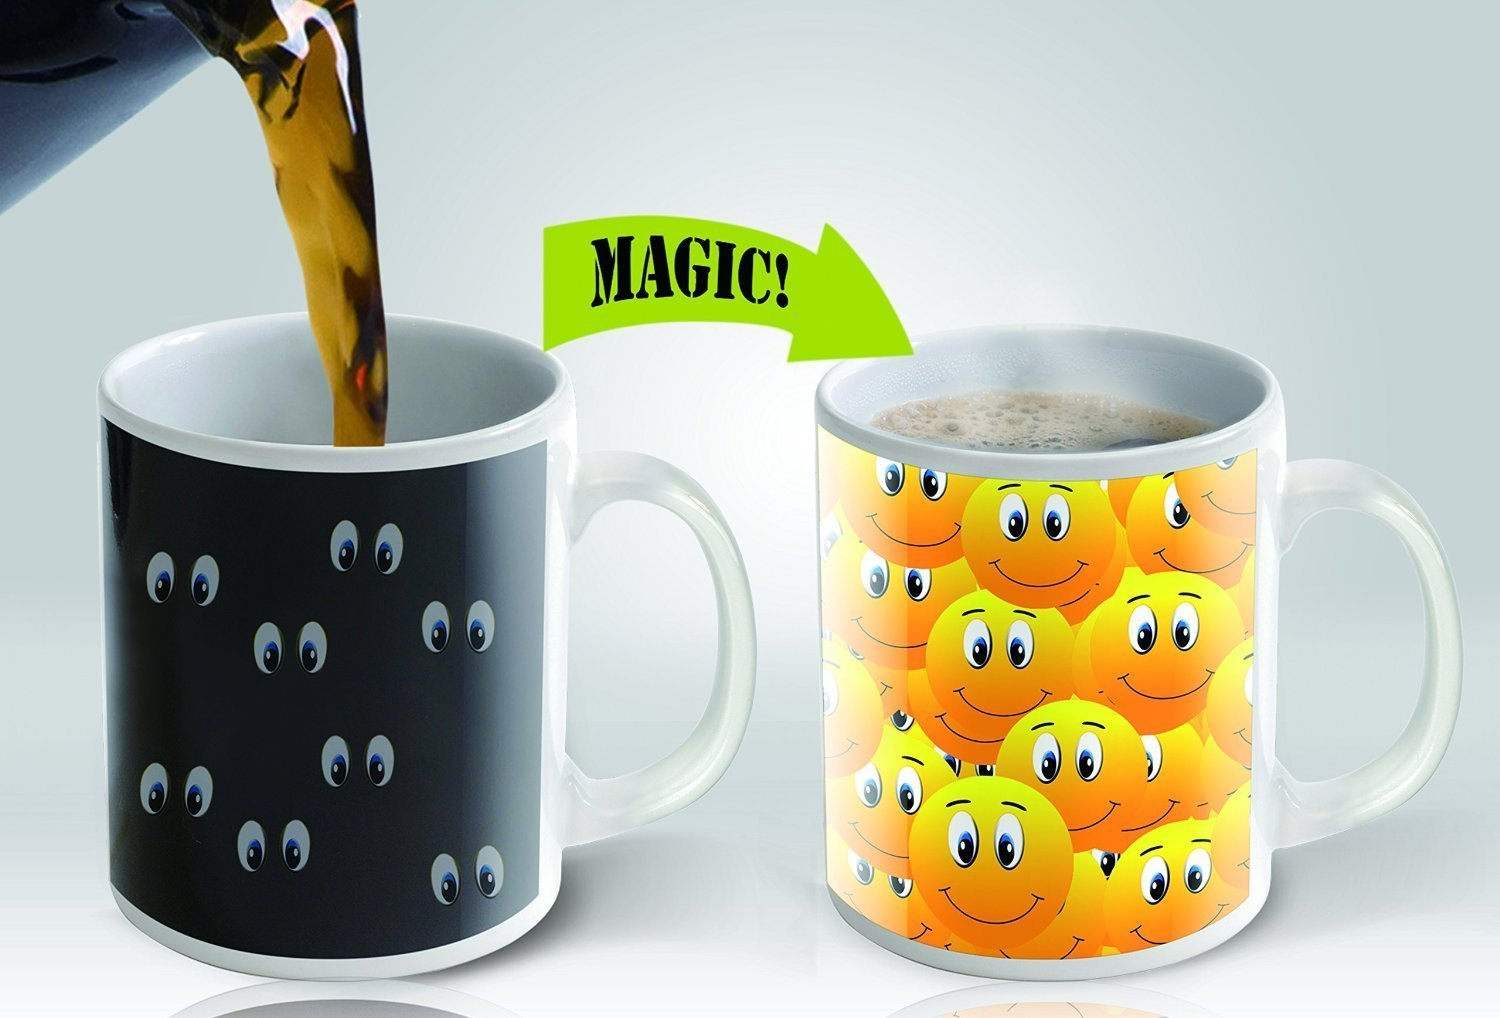 Magic Mugs | Amazing New Heat Sensitive Color Changing Coffee Mug , Good  Unique Gift Idea | Smiley Cup Design: Amazon.co.uk: Kitchen U0026 Home